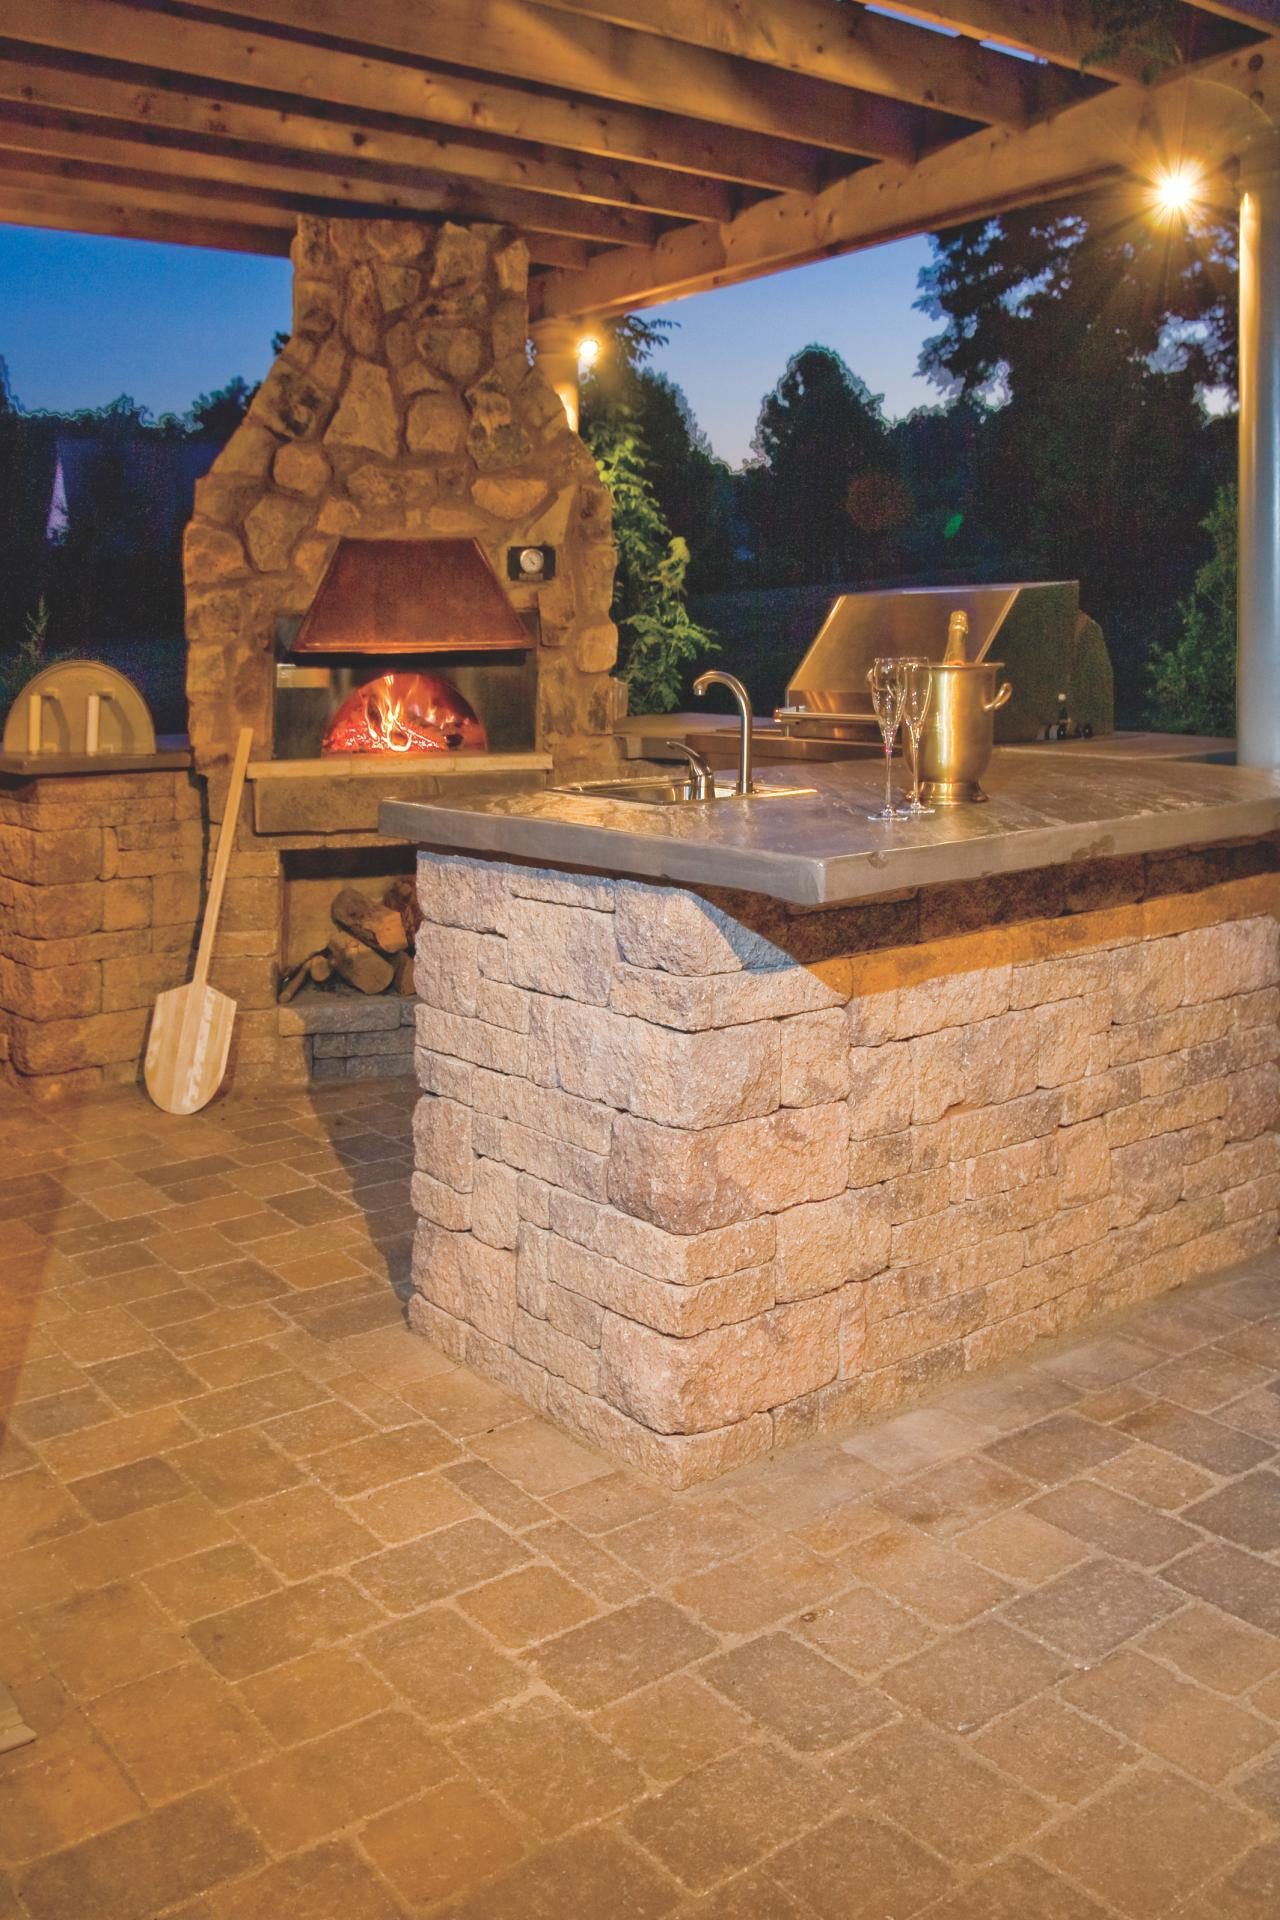 Outdoor Pizza Oven Fireplace Options and Ideas | HGTV on Outdoor Kitchen And Fireplace Ideas id=65408